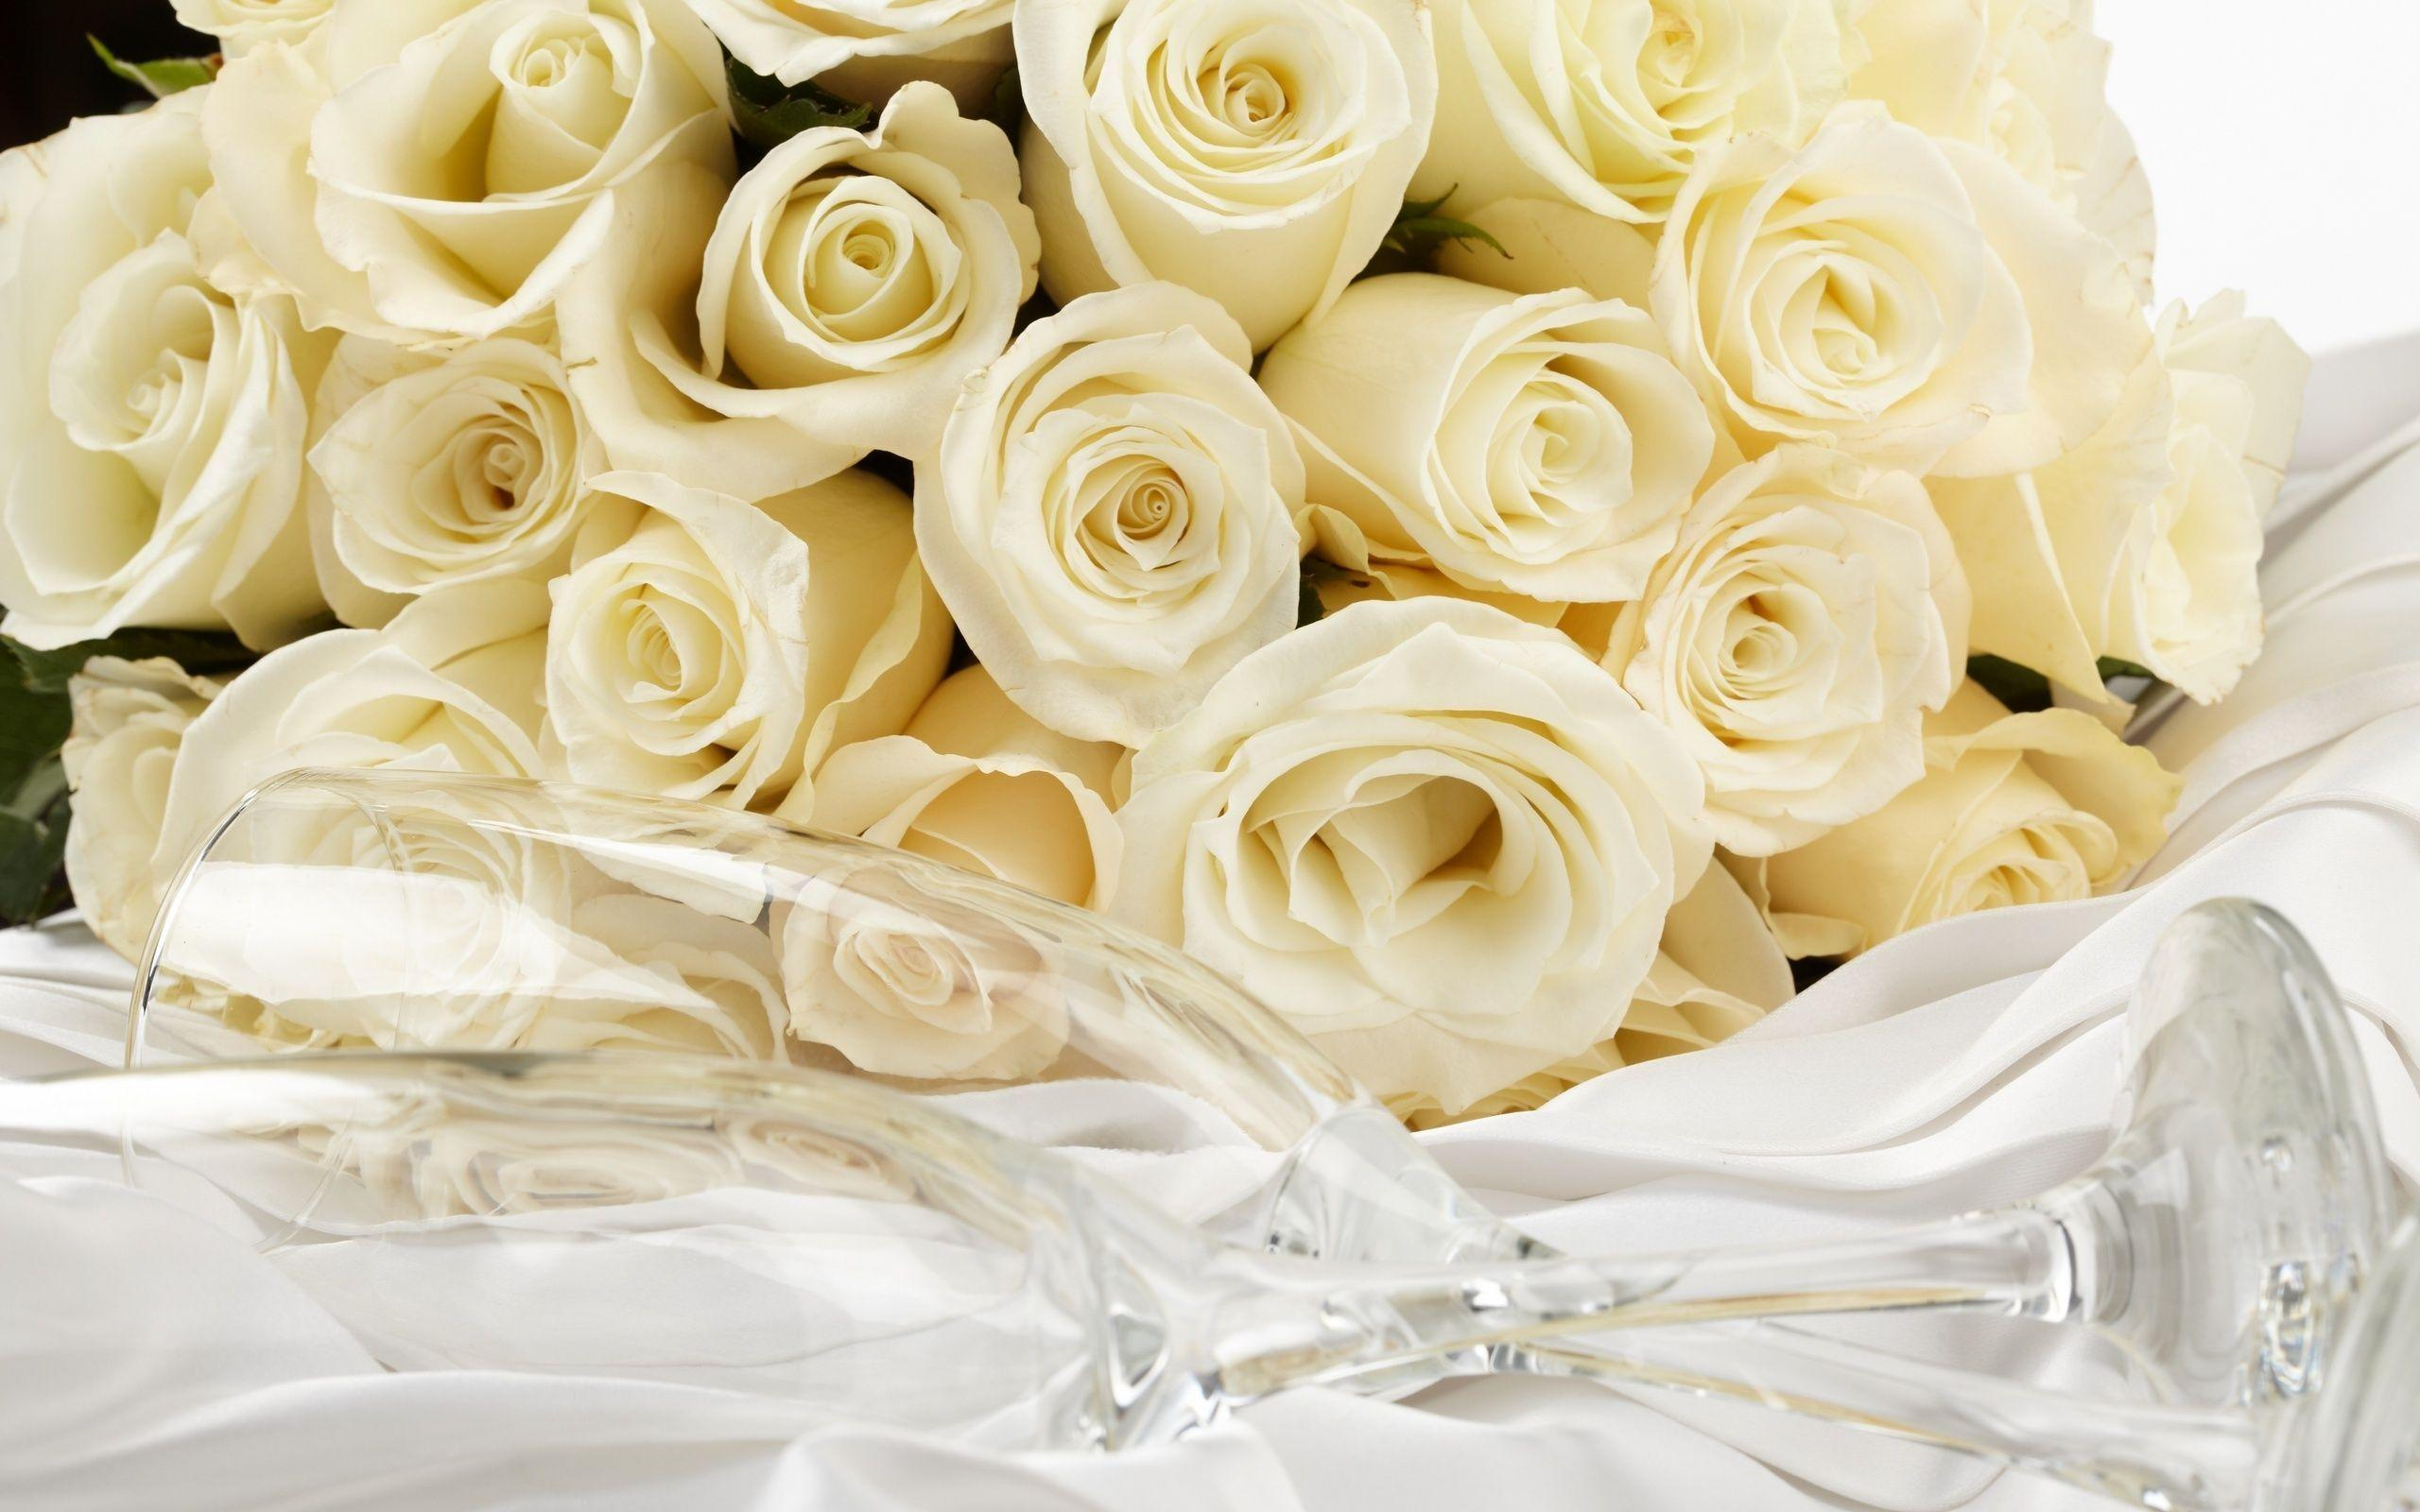 white rose backgrounds wallpapers - photo #3